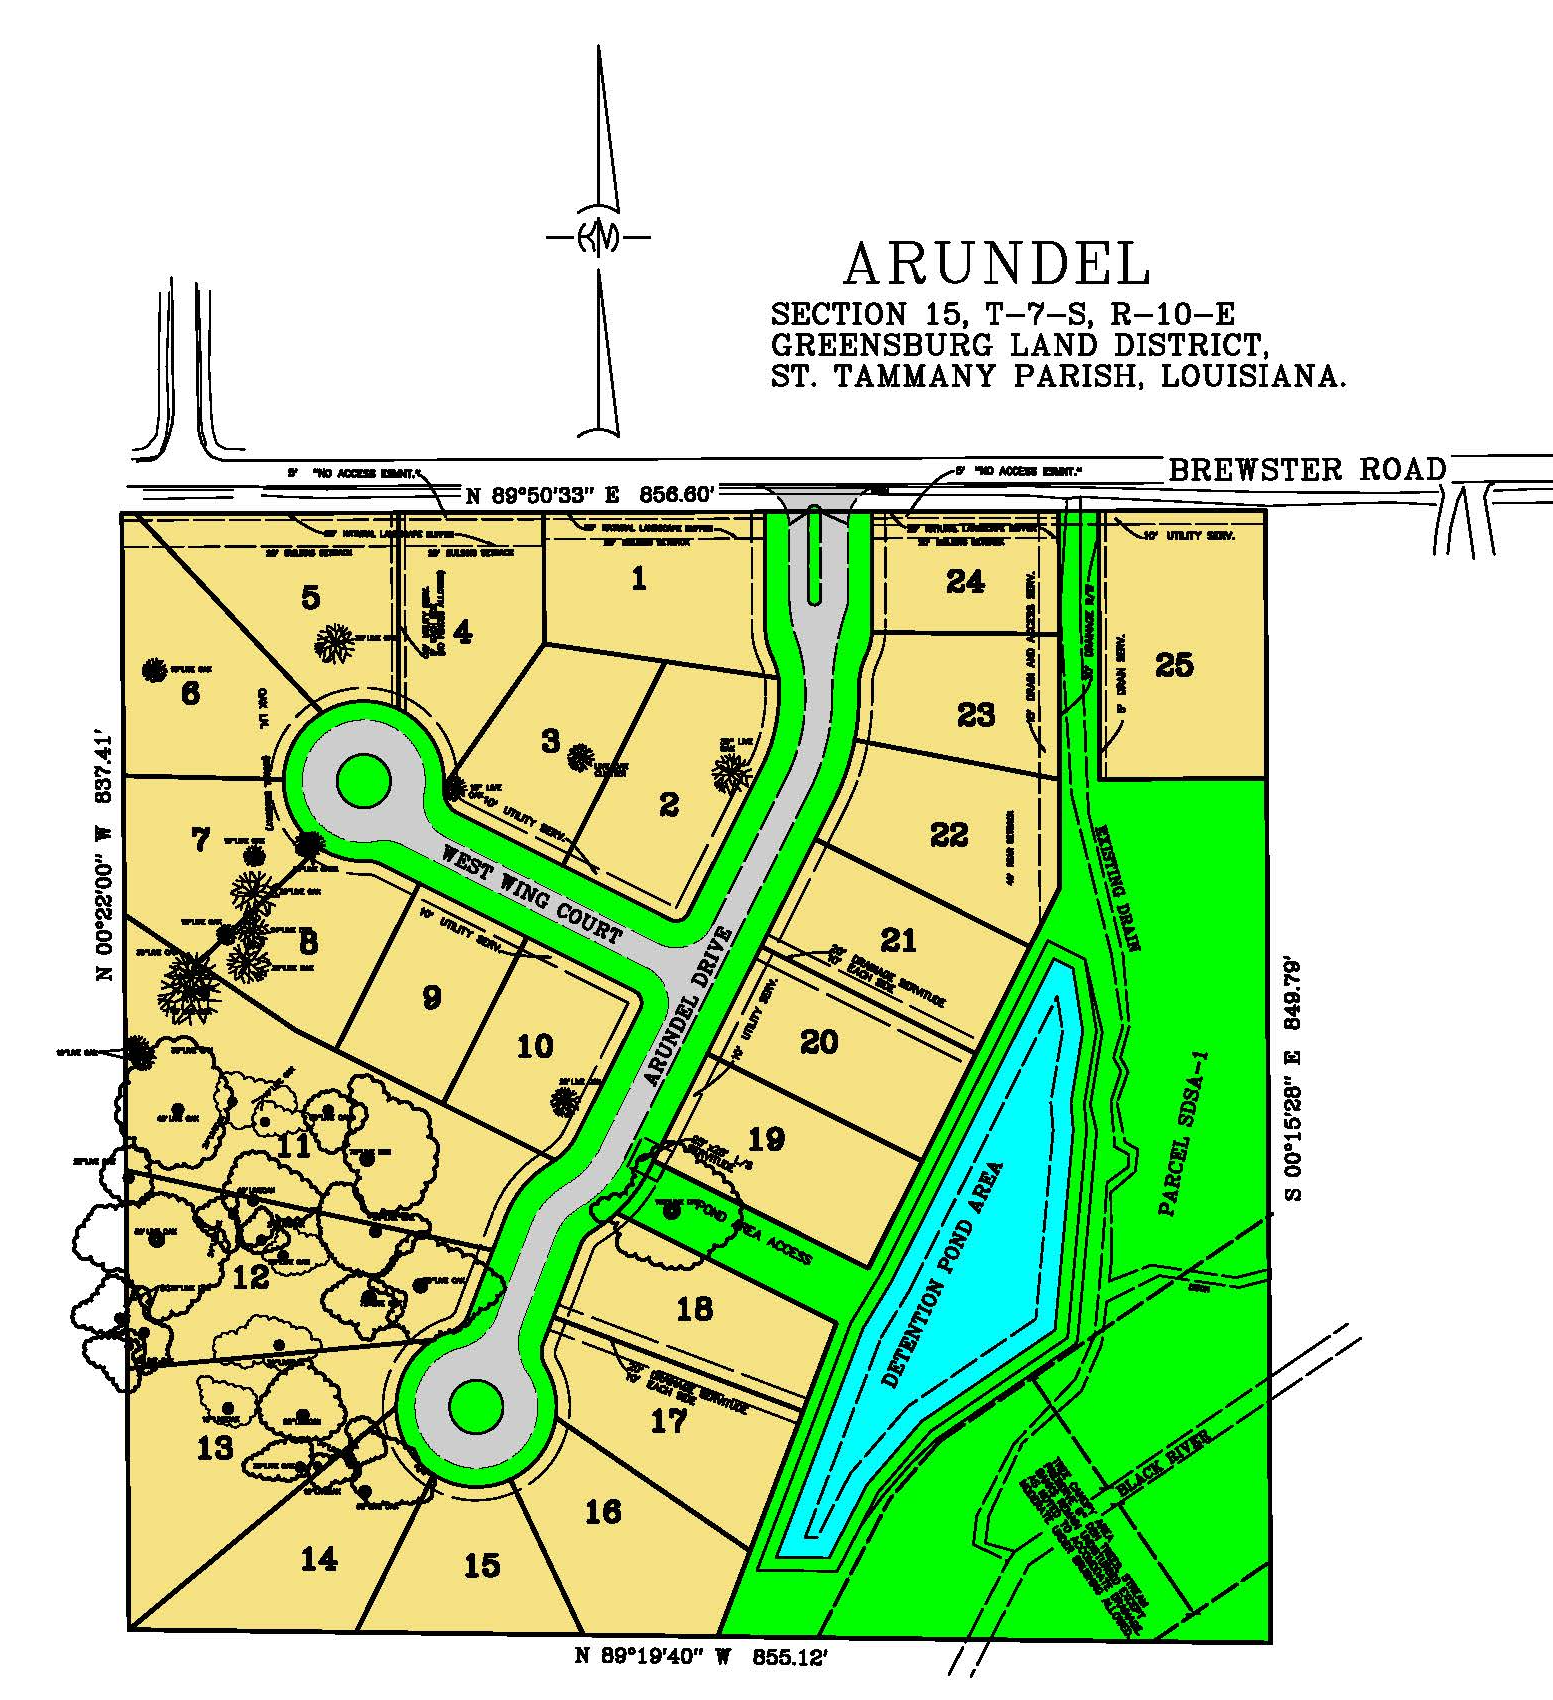 ARUNDEL COLOR MAP cropped